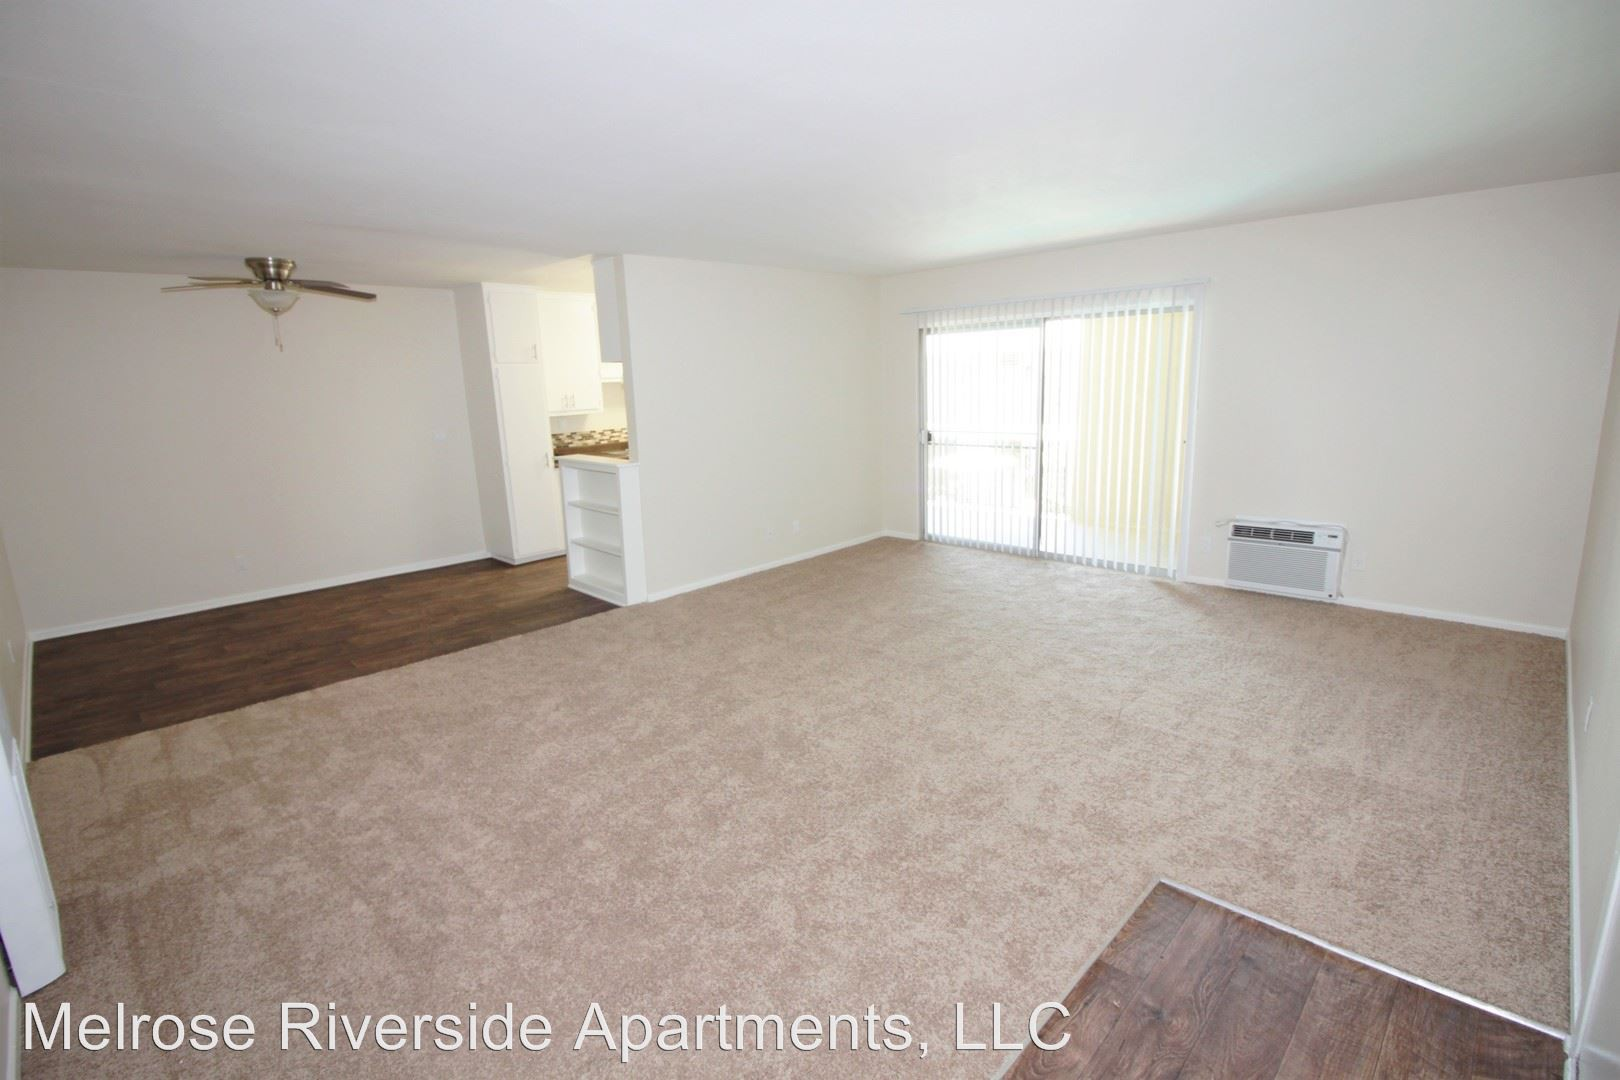 Apartments Near Cal Baptist Melrose Place 2 for California Baptist University Students in Riverside, CA